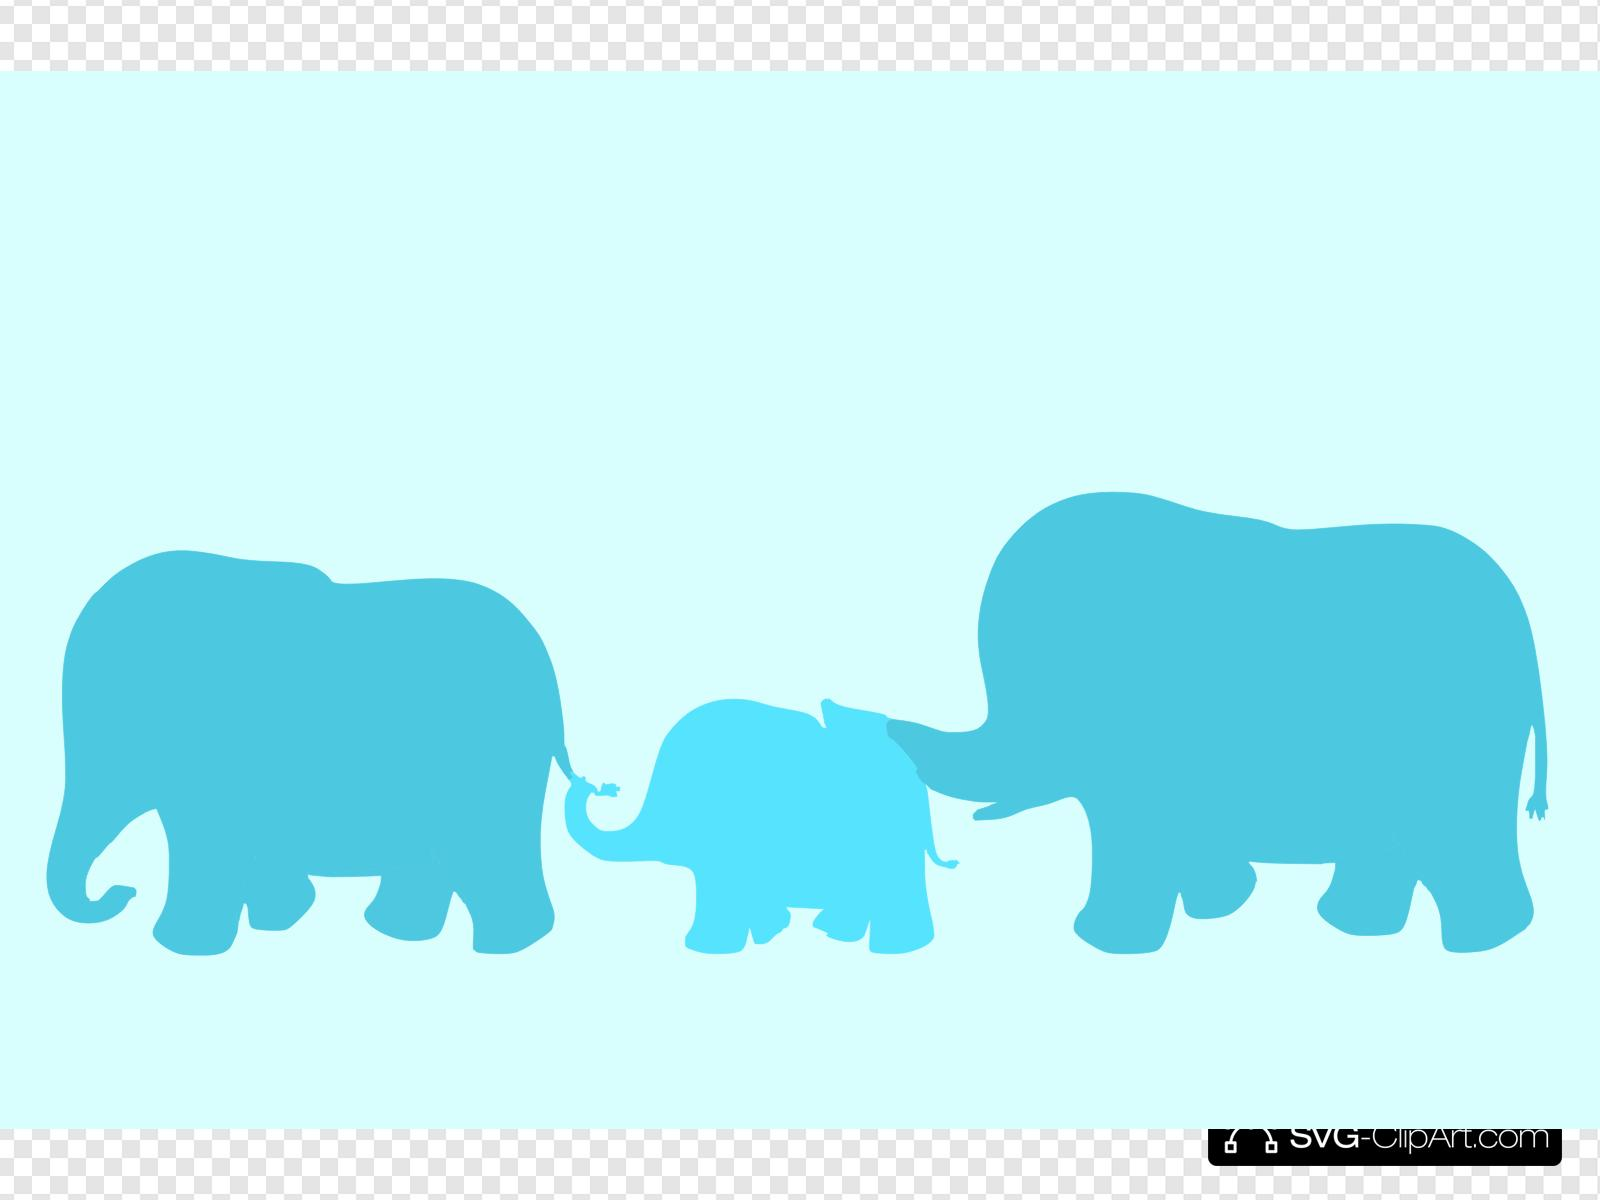 Elephant family clipart clip freeuse library Elephant Family Cartoon Clip art, Icon and SVG - SVG Clipart clip freeuse library